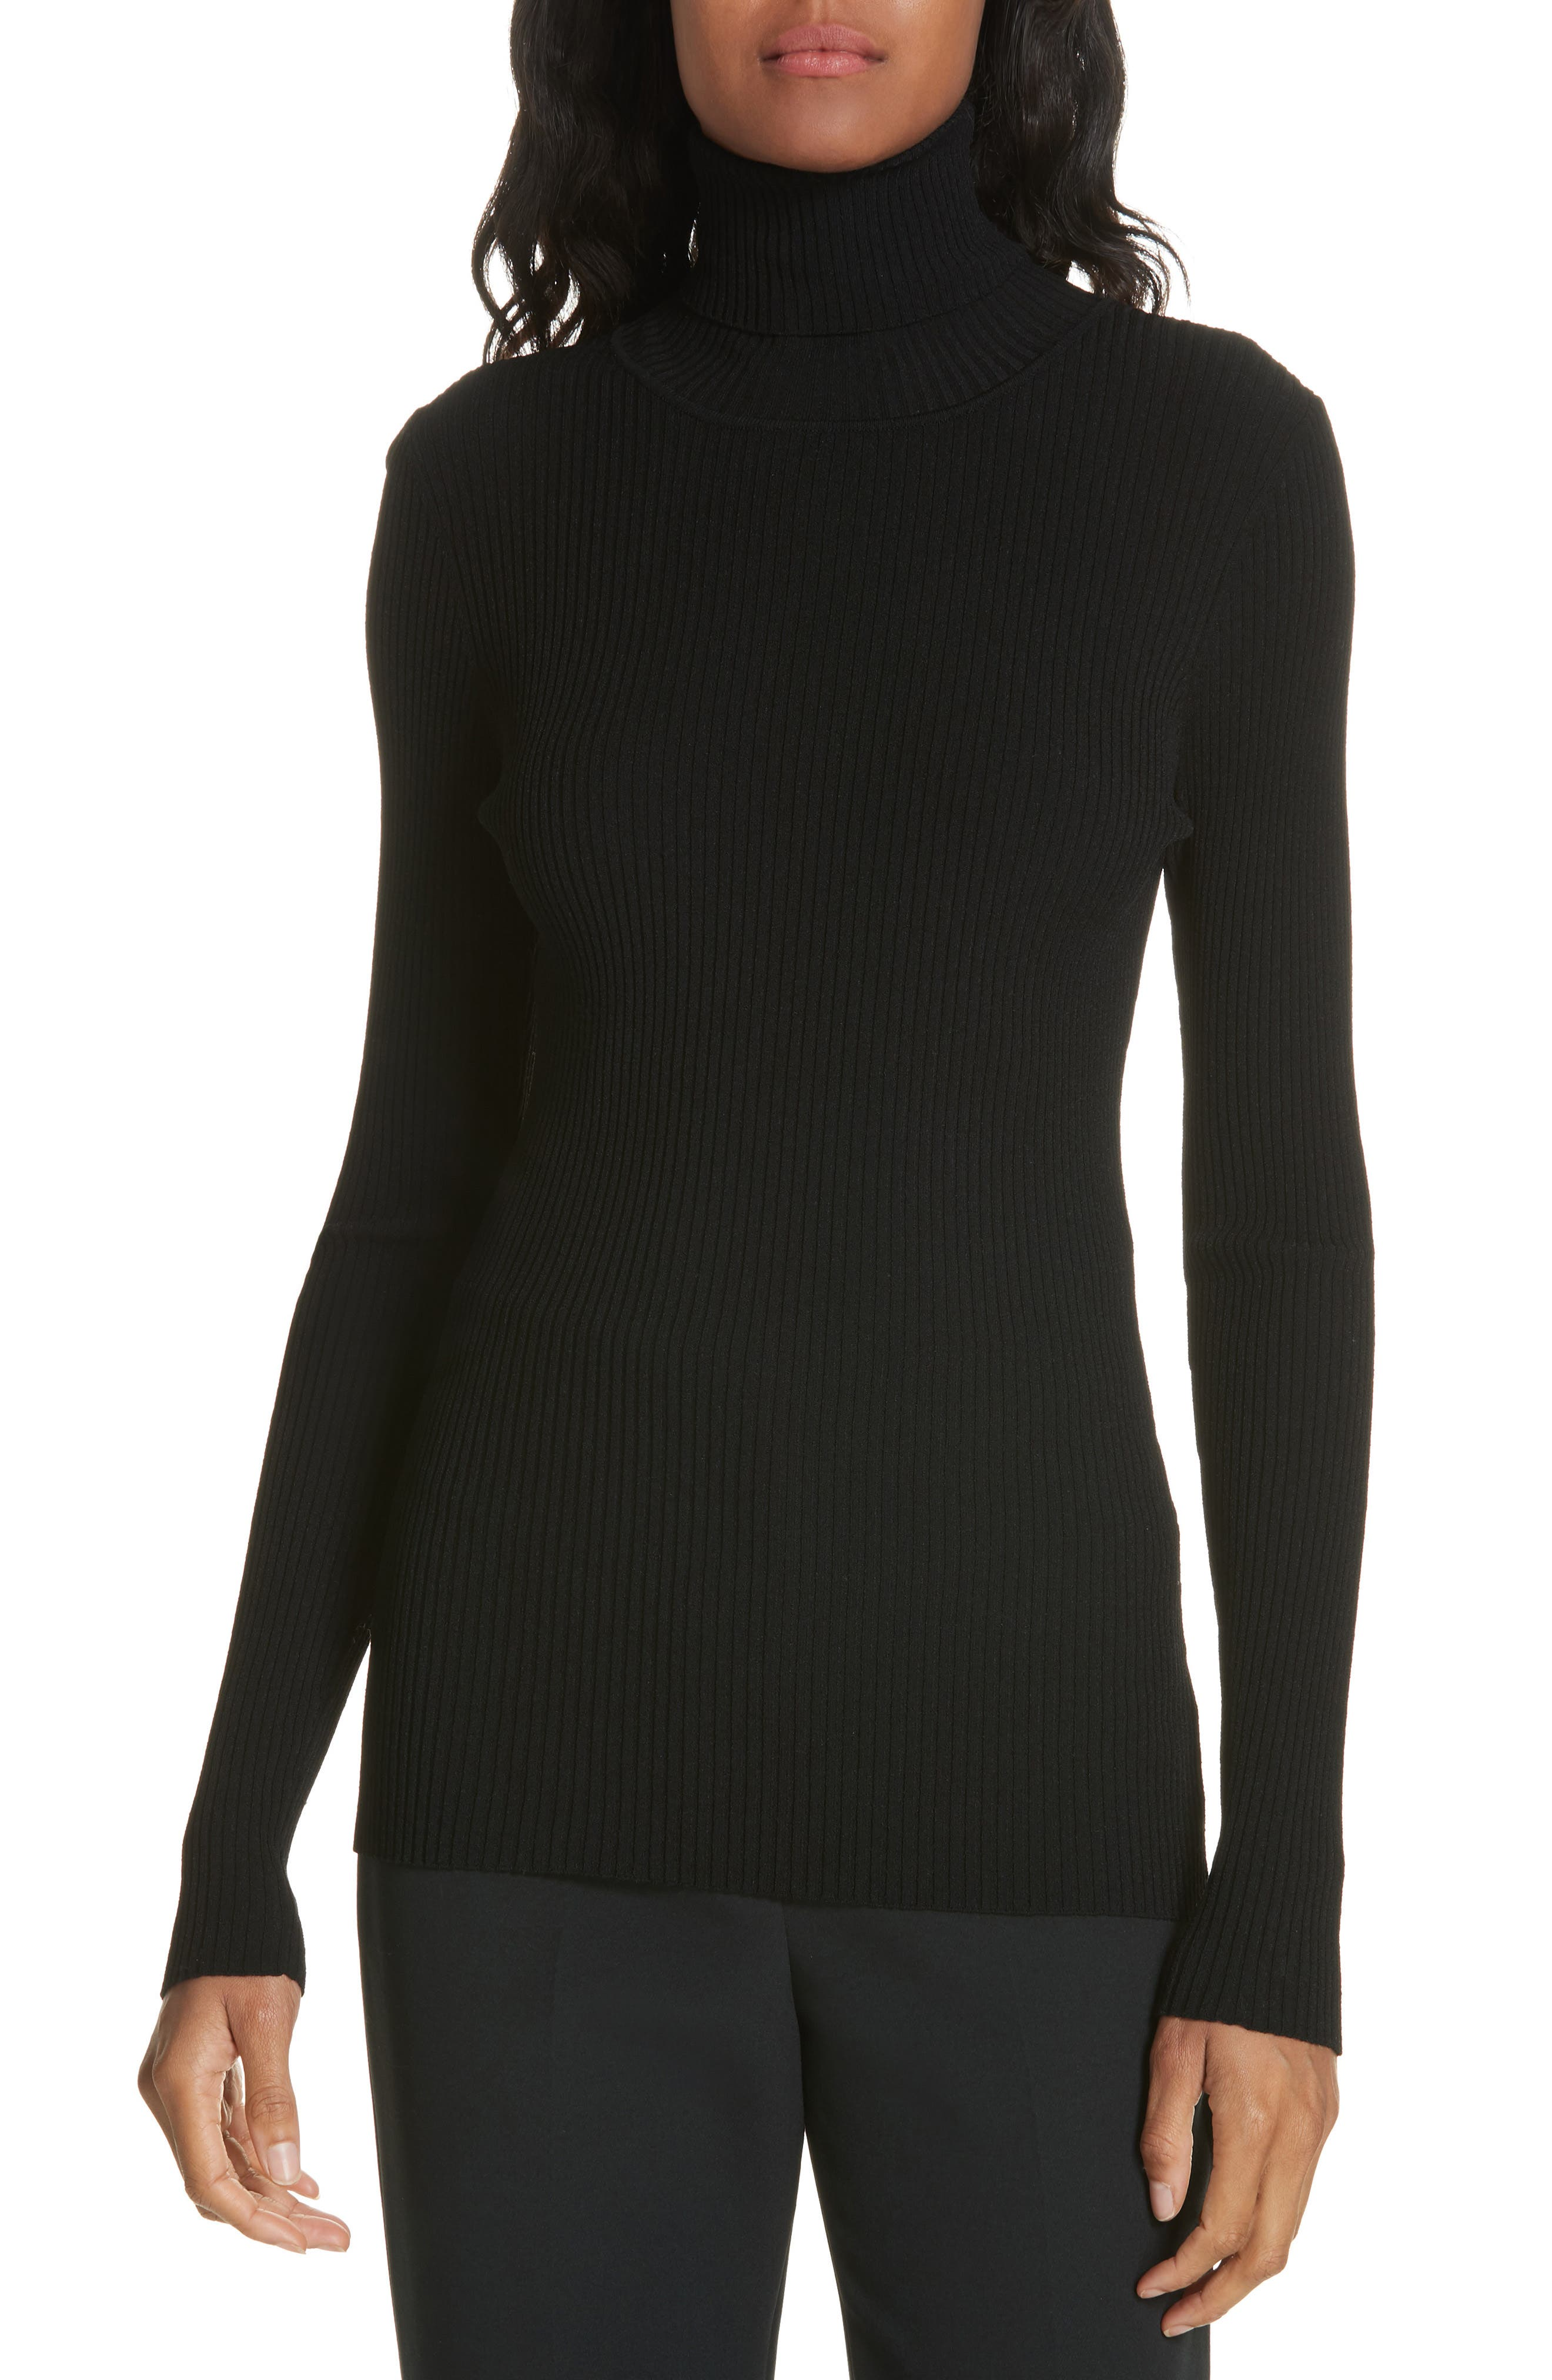 MILLY Ribbed Turtleneck Sweater, Main, color, 001